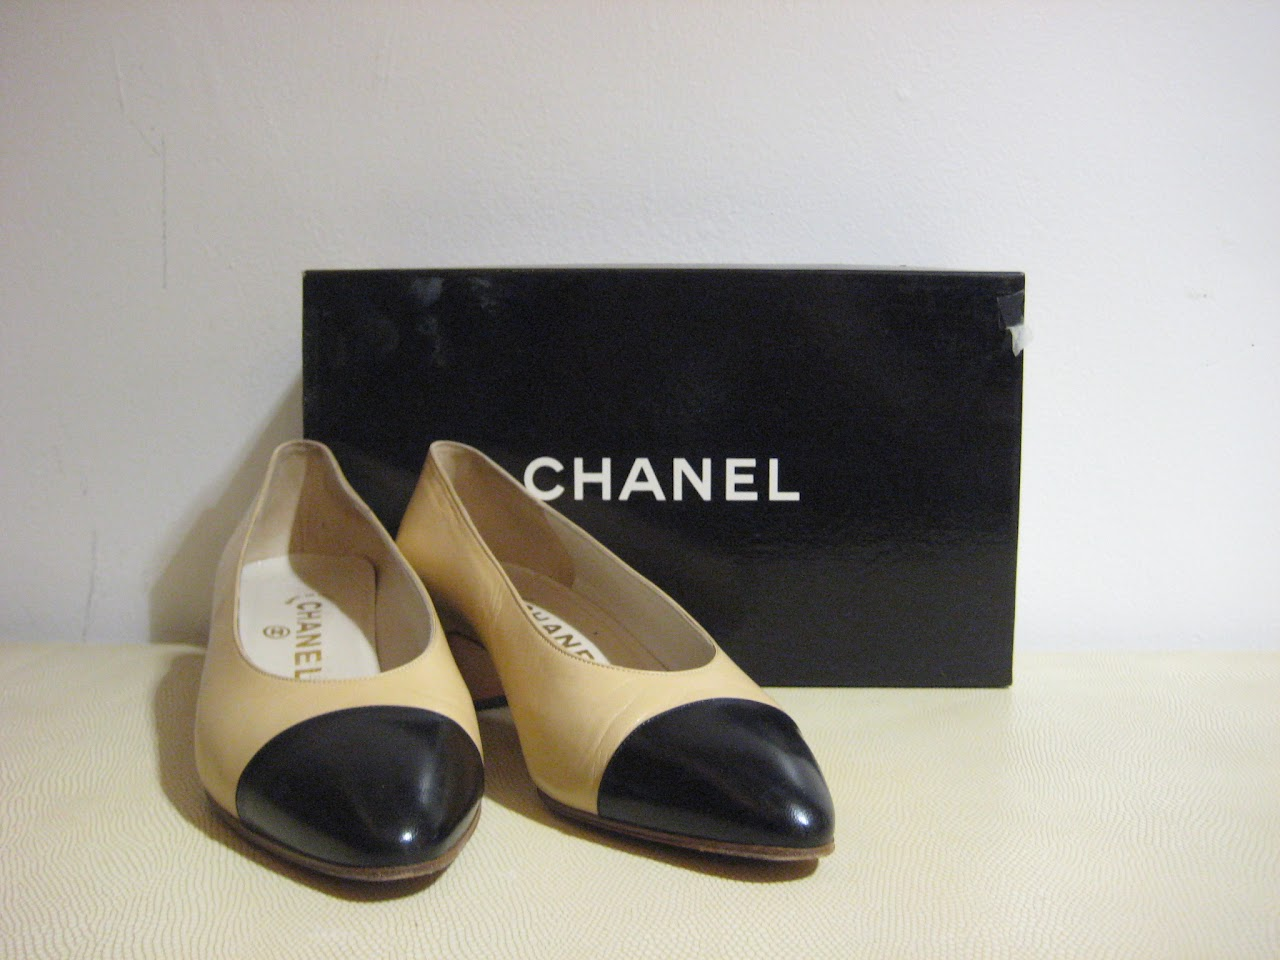 Chanel Black and Beige Kitten Heels